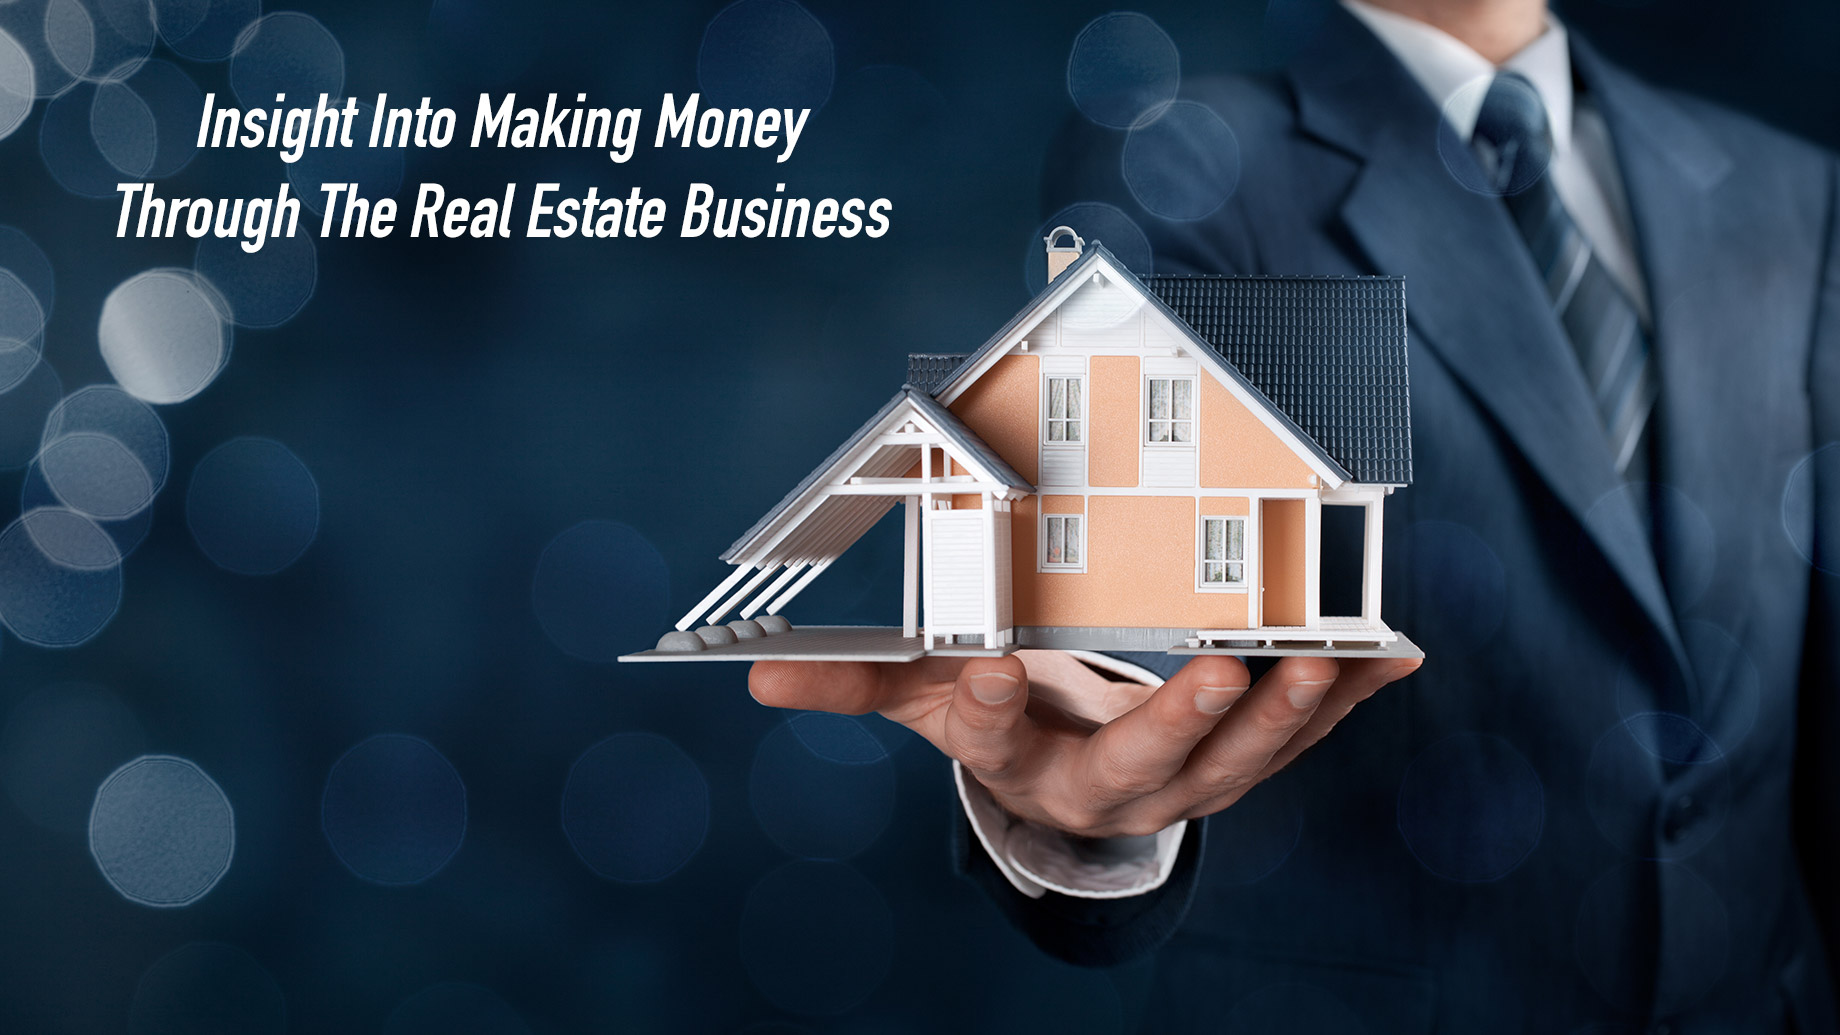 Insight Into Making Money Through The Real Estate Business